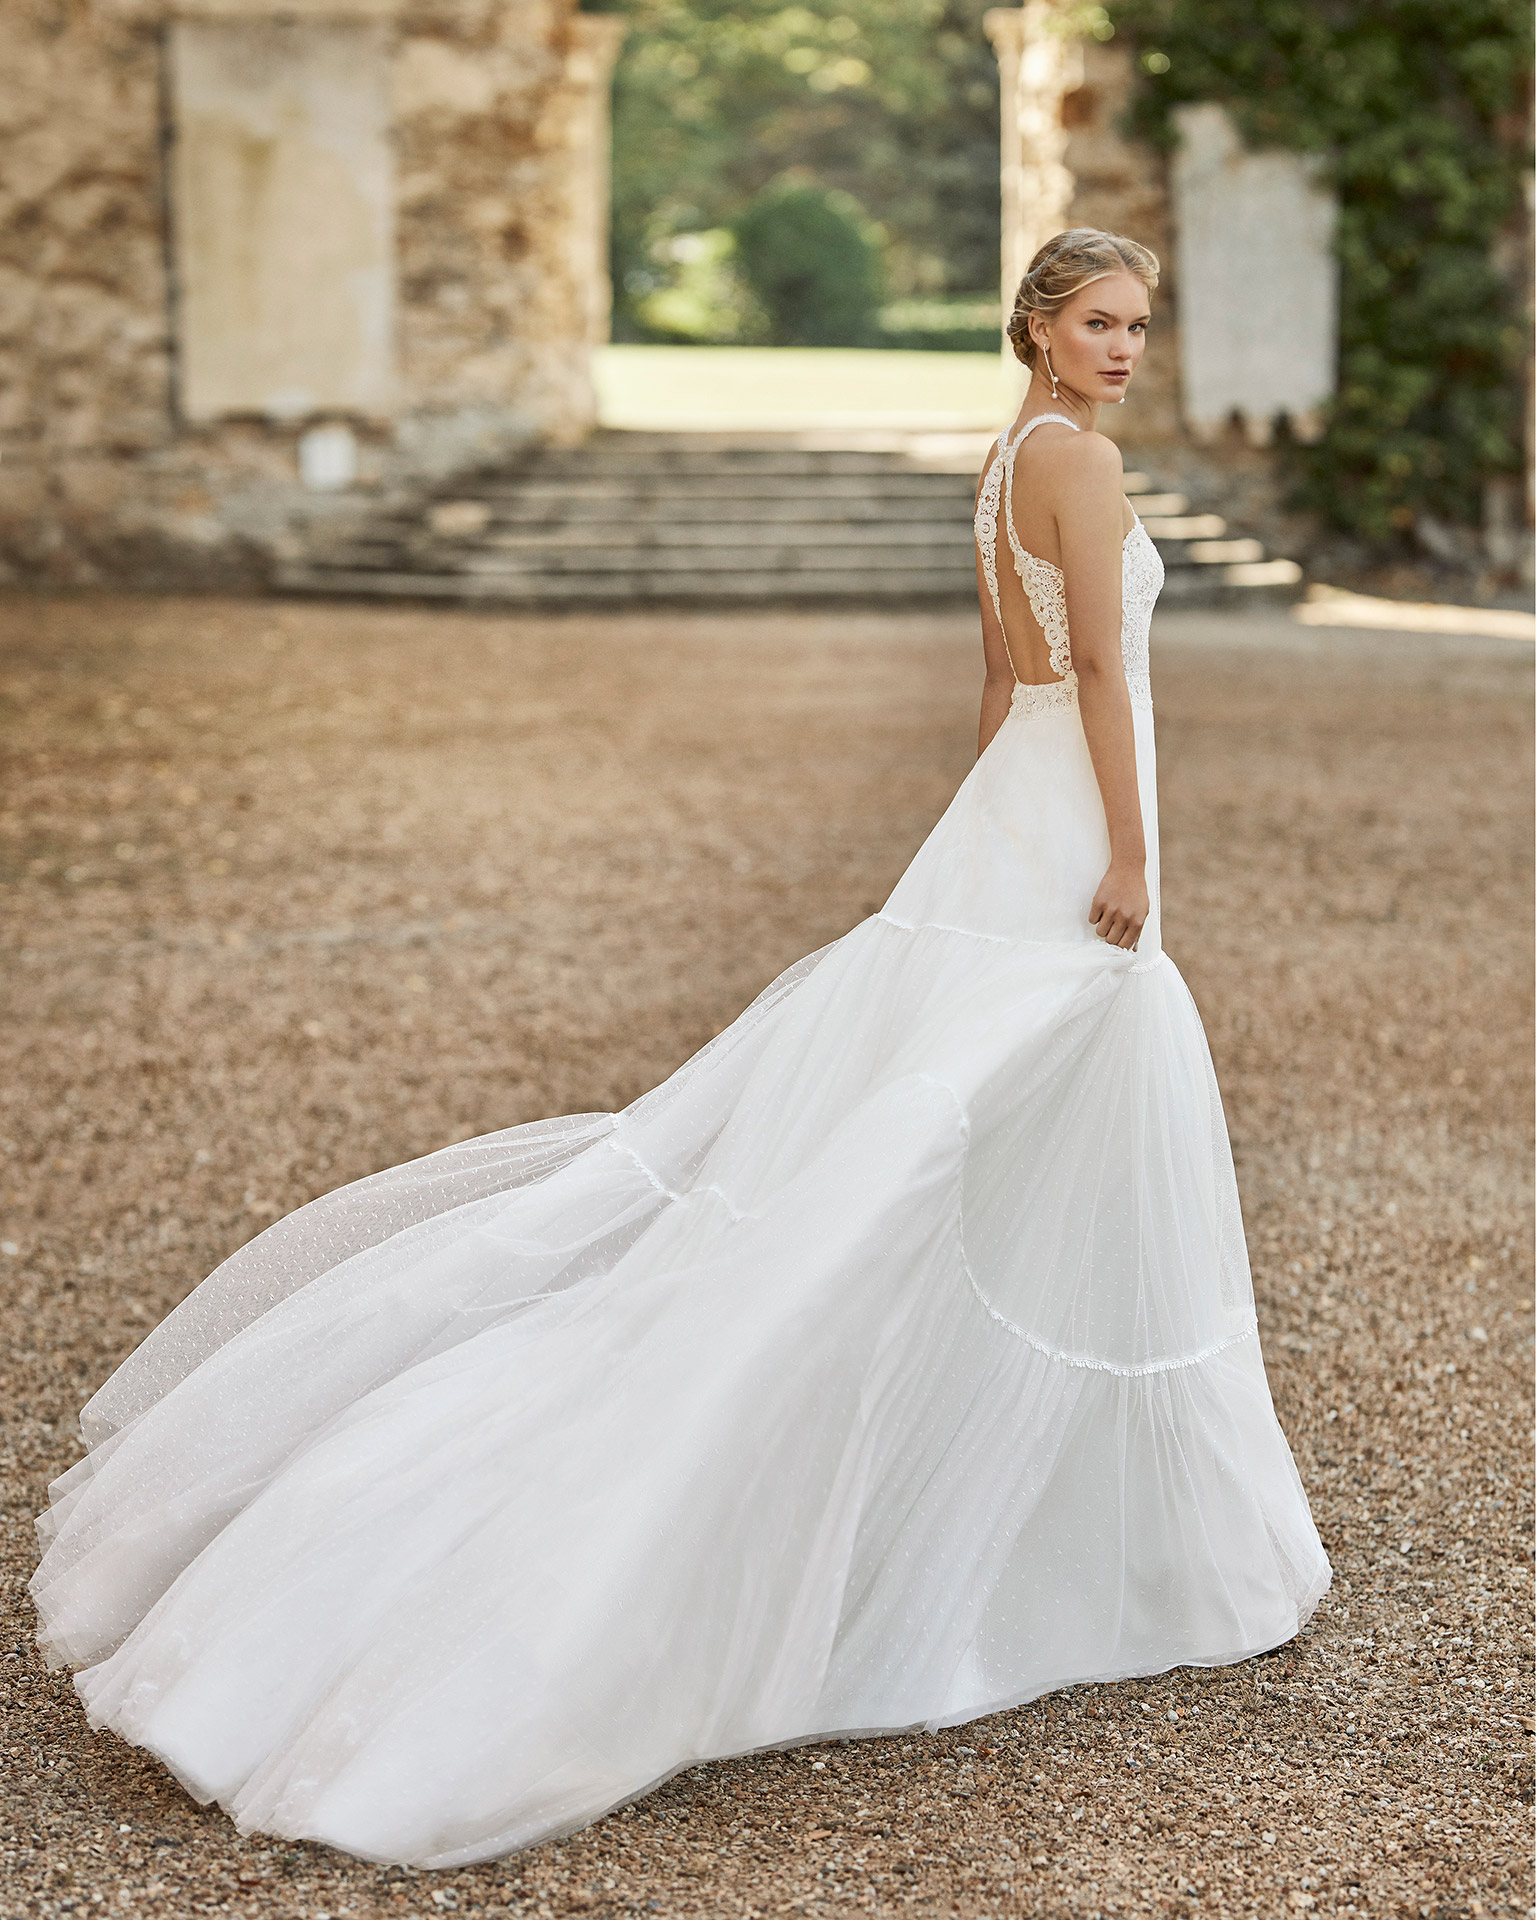 Wedding dress in dot tulle and lace. Halter neckline in beaded lace, lace belt and low back and lace shoulder straps attached to collar. 2021 ALMANOVIA Collection.